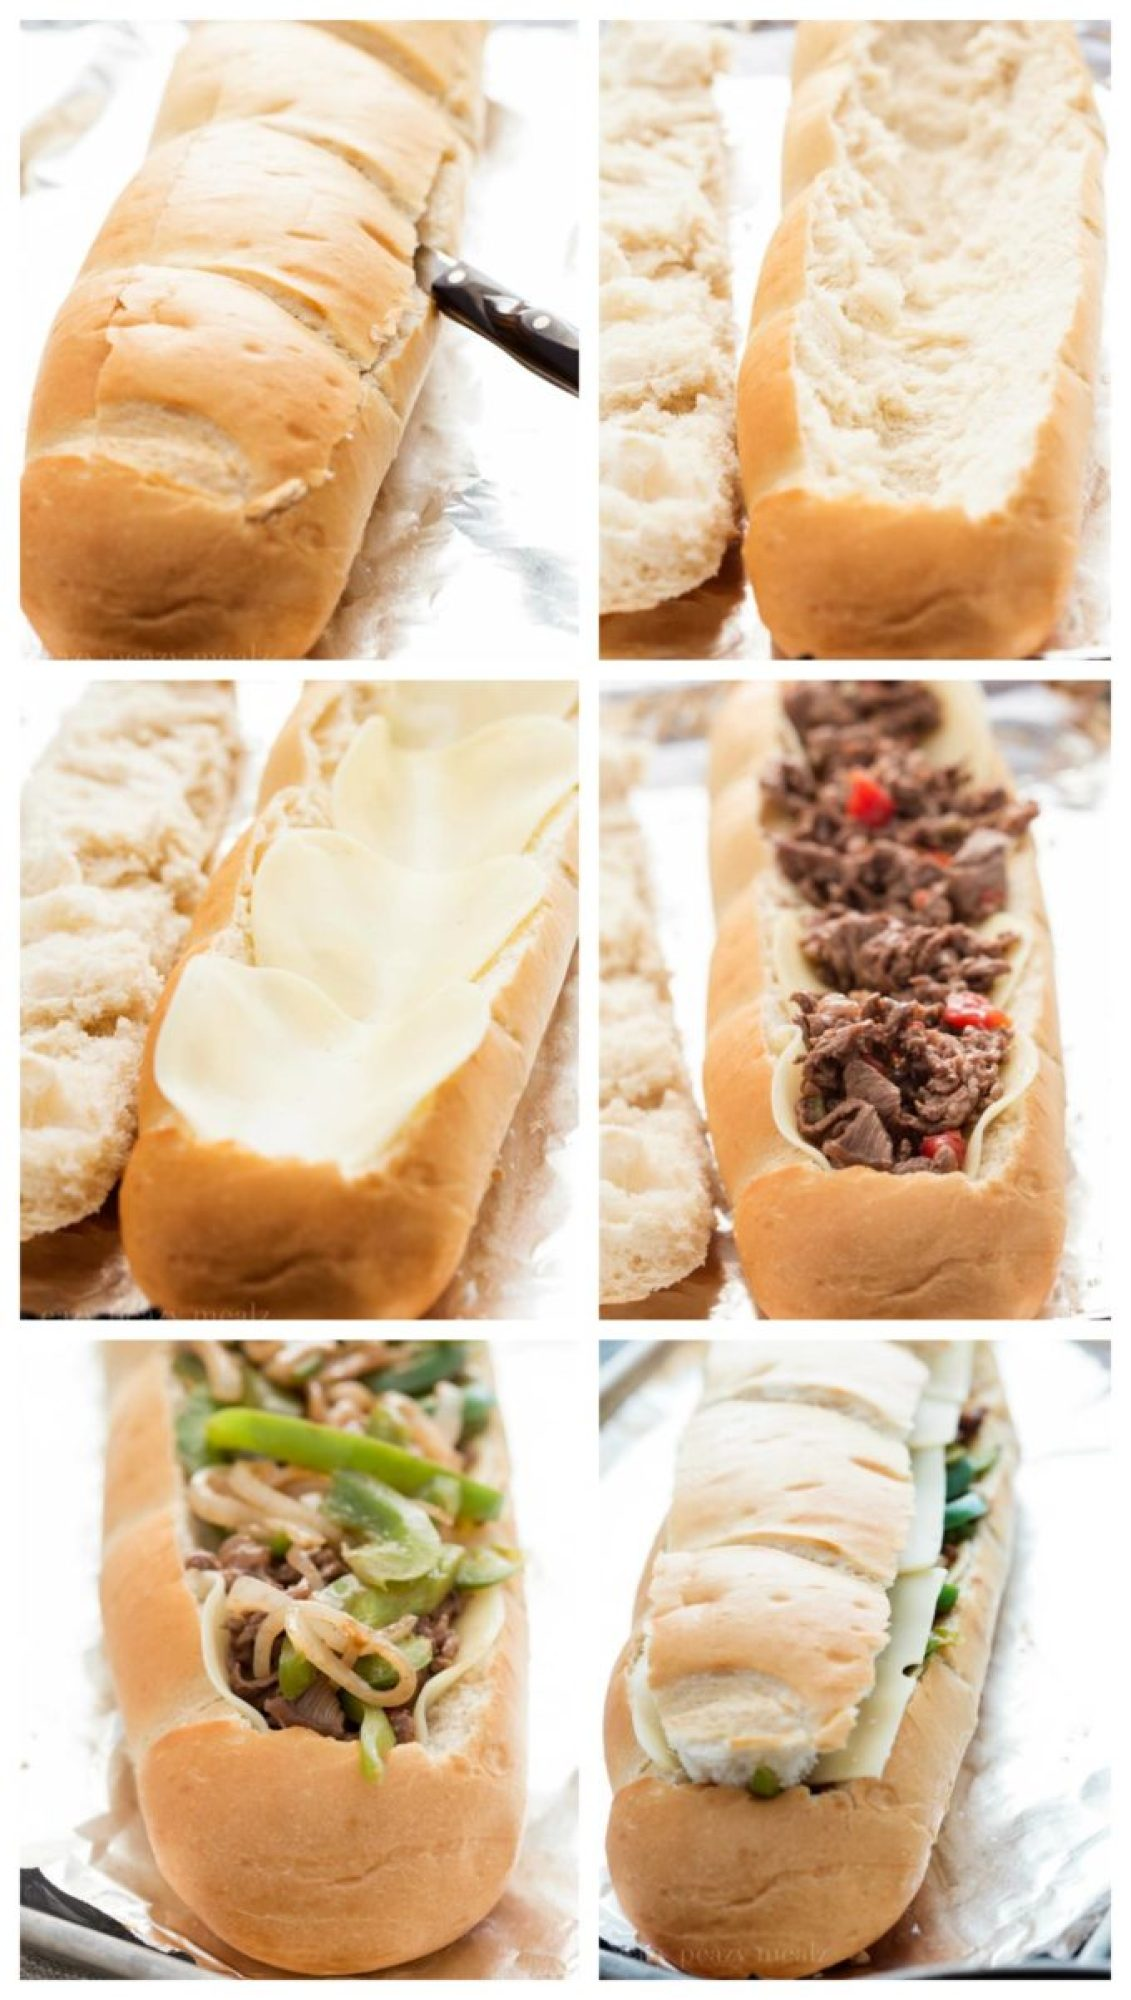 Stuffing the bread collage